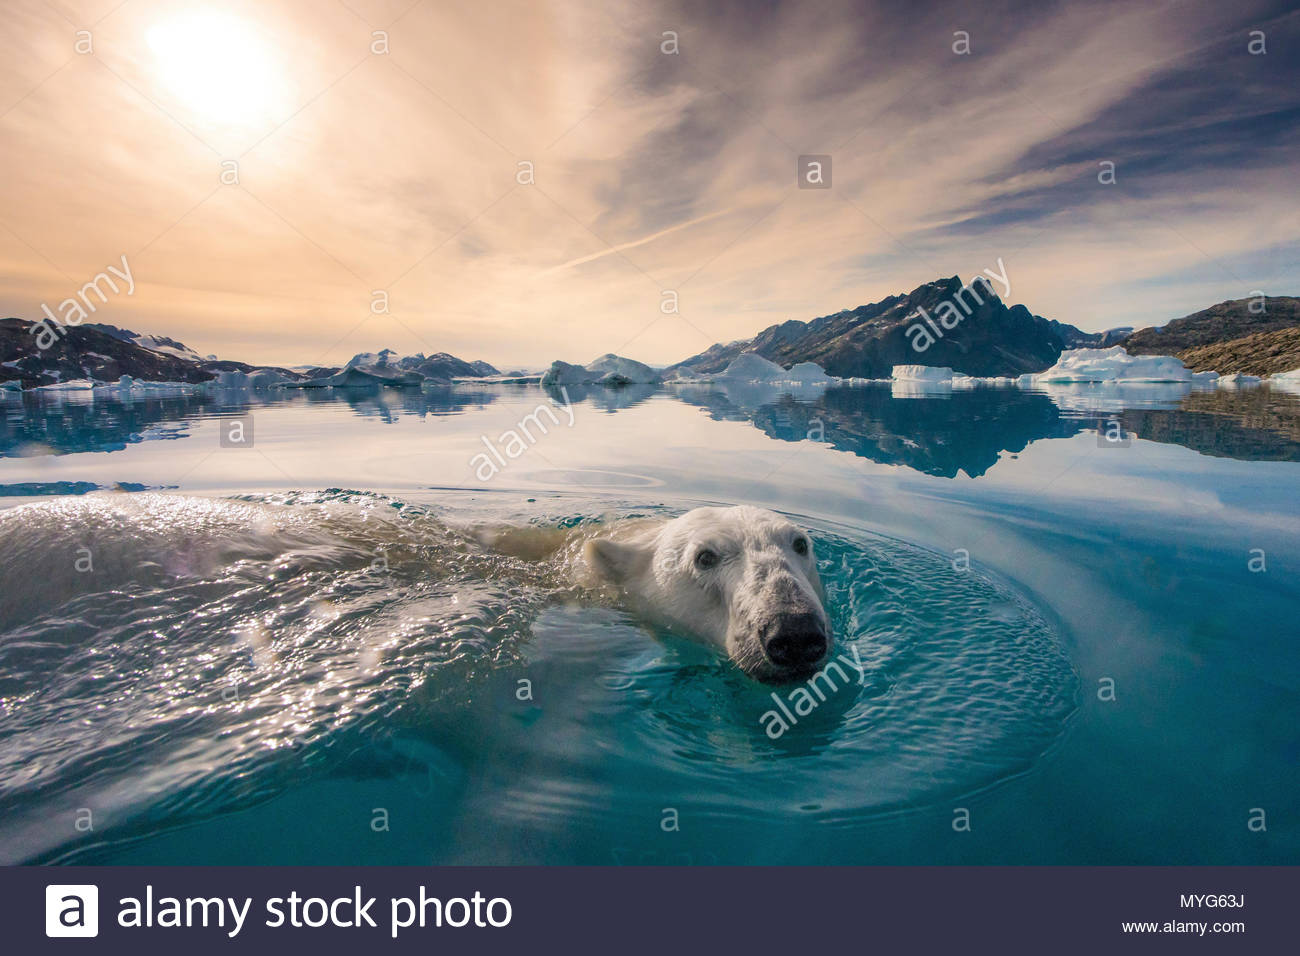 A polar bear swims on the water's surface. - Stock Image